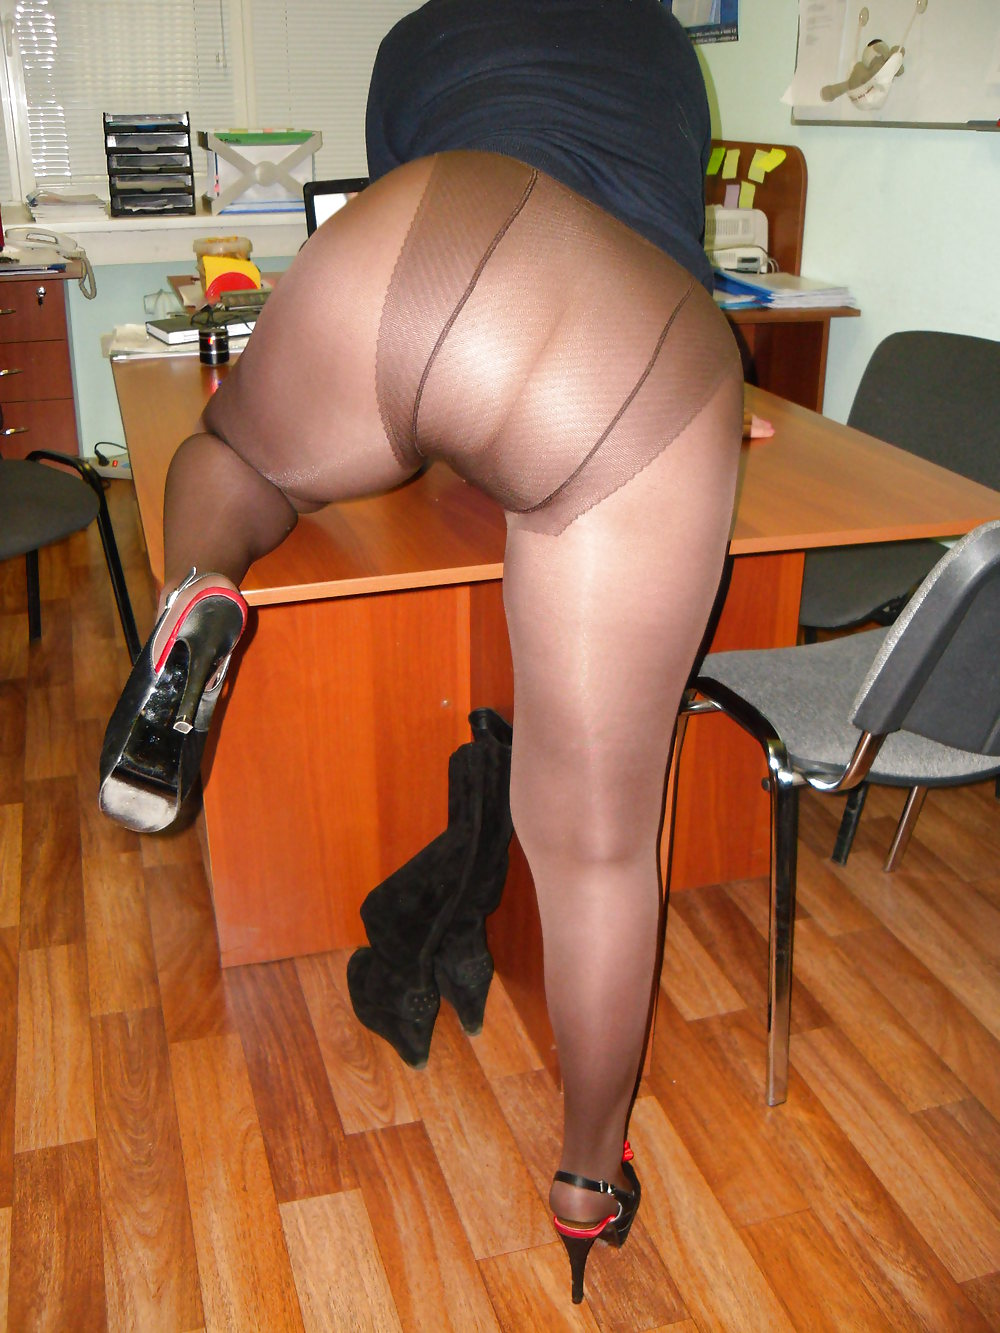 tights-and-pantyhose-ladies-ass-a-naked-girl-kisses-a-naked-girl